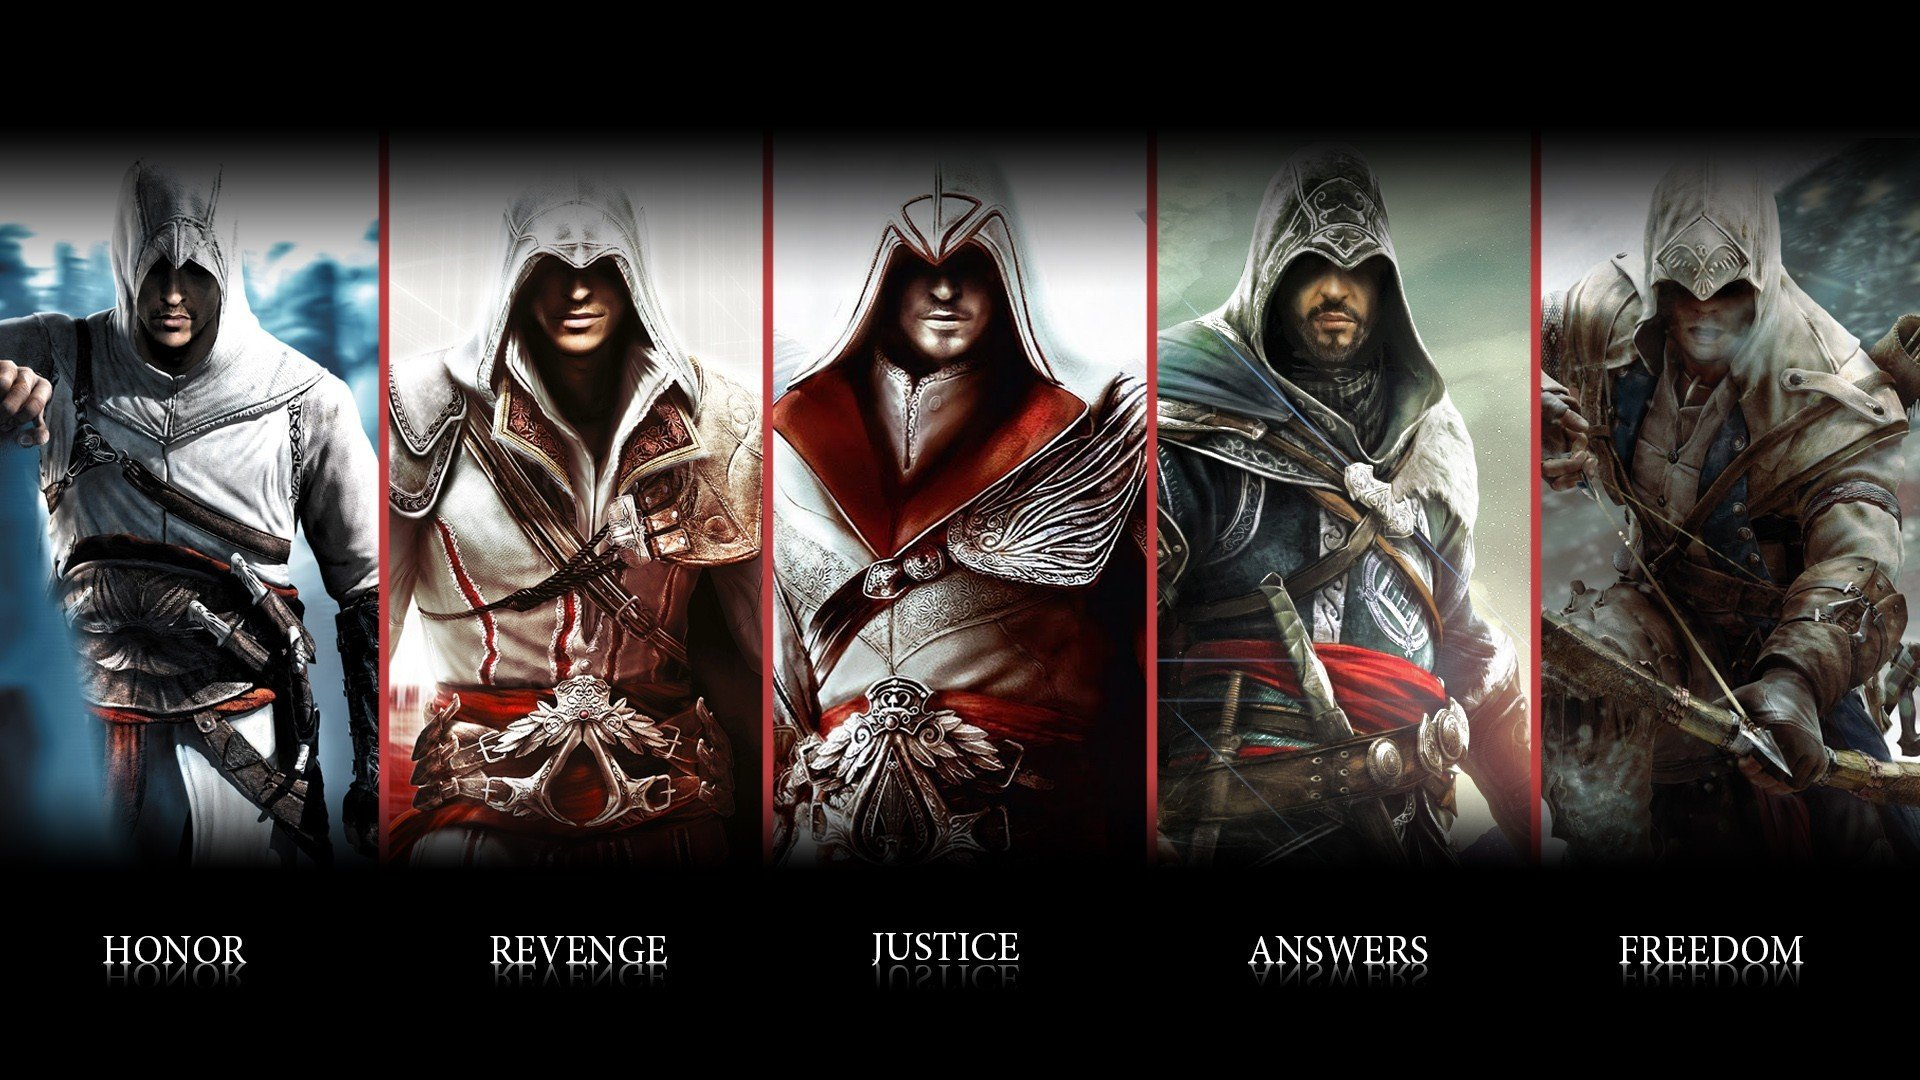 Free Download Ezio Quotes Wallpaper Quotesgram 1920x1080 For Your Desktop Mobile Tablet Explore 69 Ezio Wallpapers Assassin S Creed Phone Wallpaper Ezio Auditore Wallpaper Assassin S Creed Wallpapers